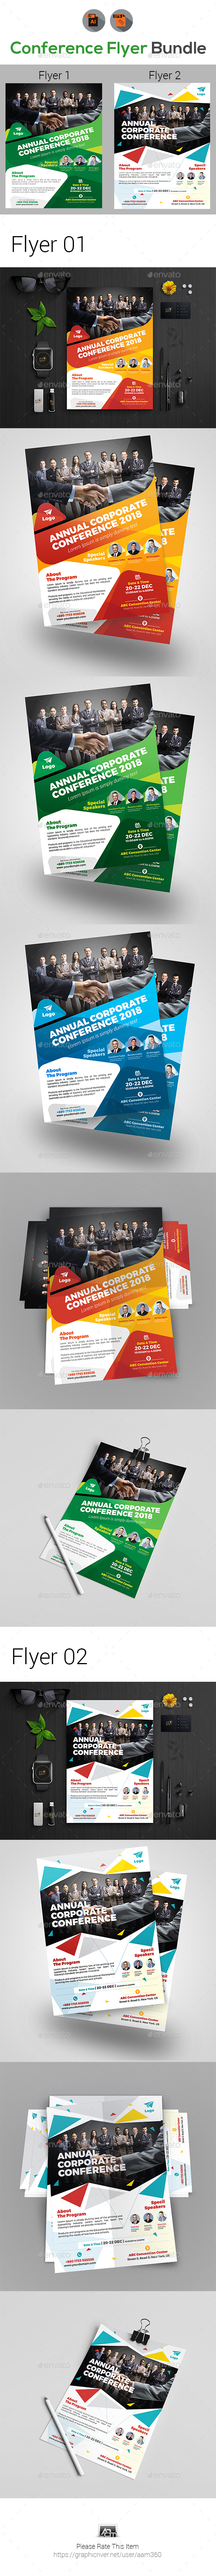 Annual Event Summit Flyer Bundle - Corporate Flyers